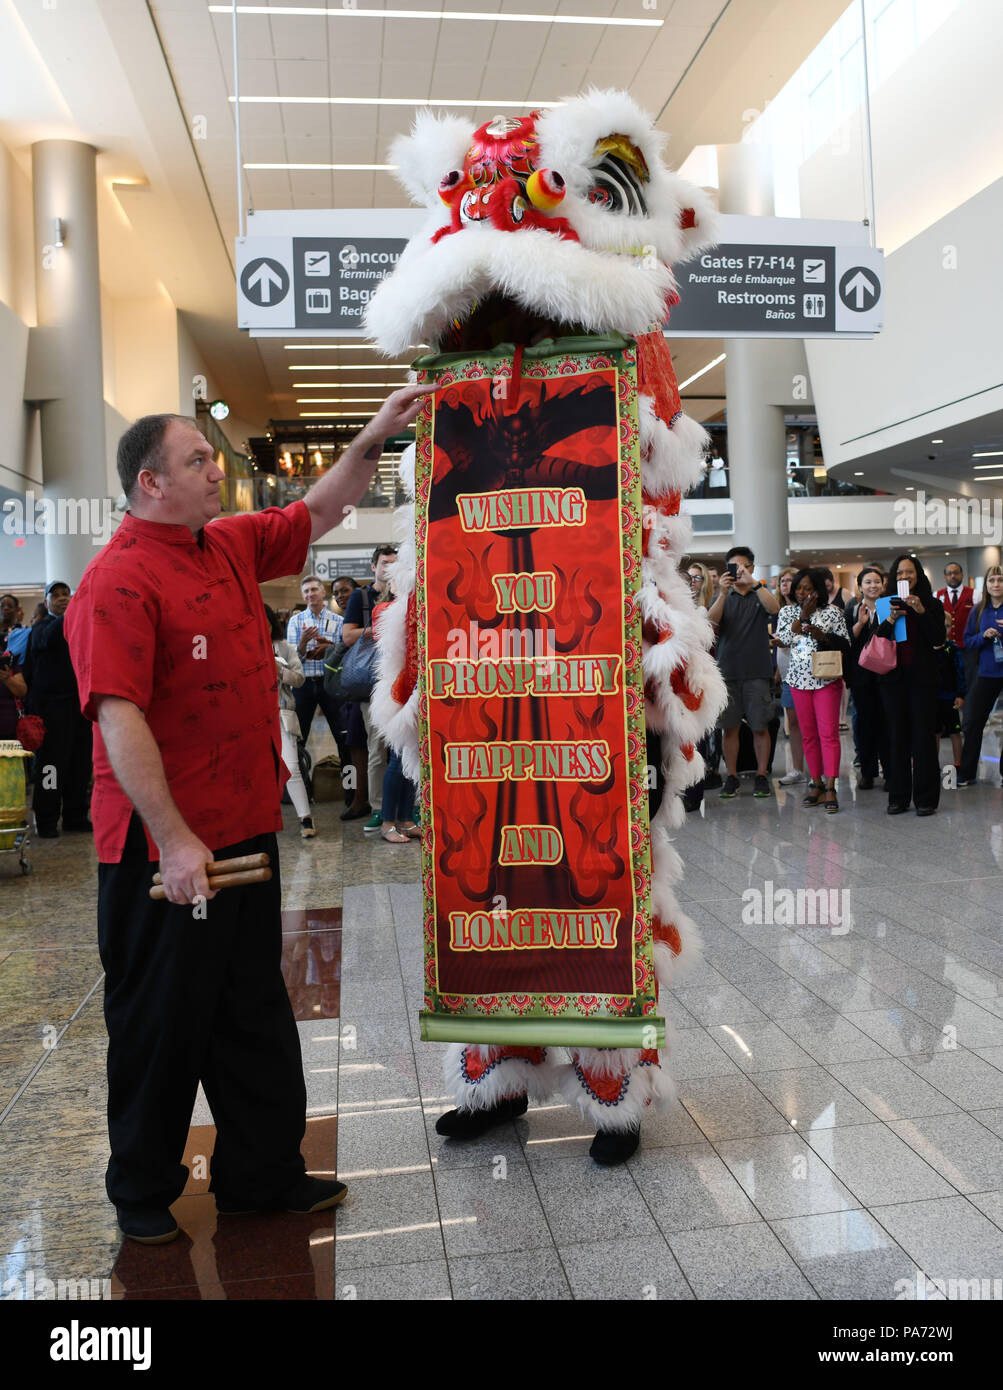 Atlanta, USA. 20th July, 2018. Actors perform lion dance at the inaugural flight ceremony at Hartsfield-Jackson Atlanta International Airport in Atlanta, the United States, July 20, 2018. U.S. airline giant Delta Air Line relaunched a non-stop flight route Friday between Atlanta, state of Georgia, and China's Shanghai. Credit: Liu Jie/Xinhua/Alamy Live News - Stock Image